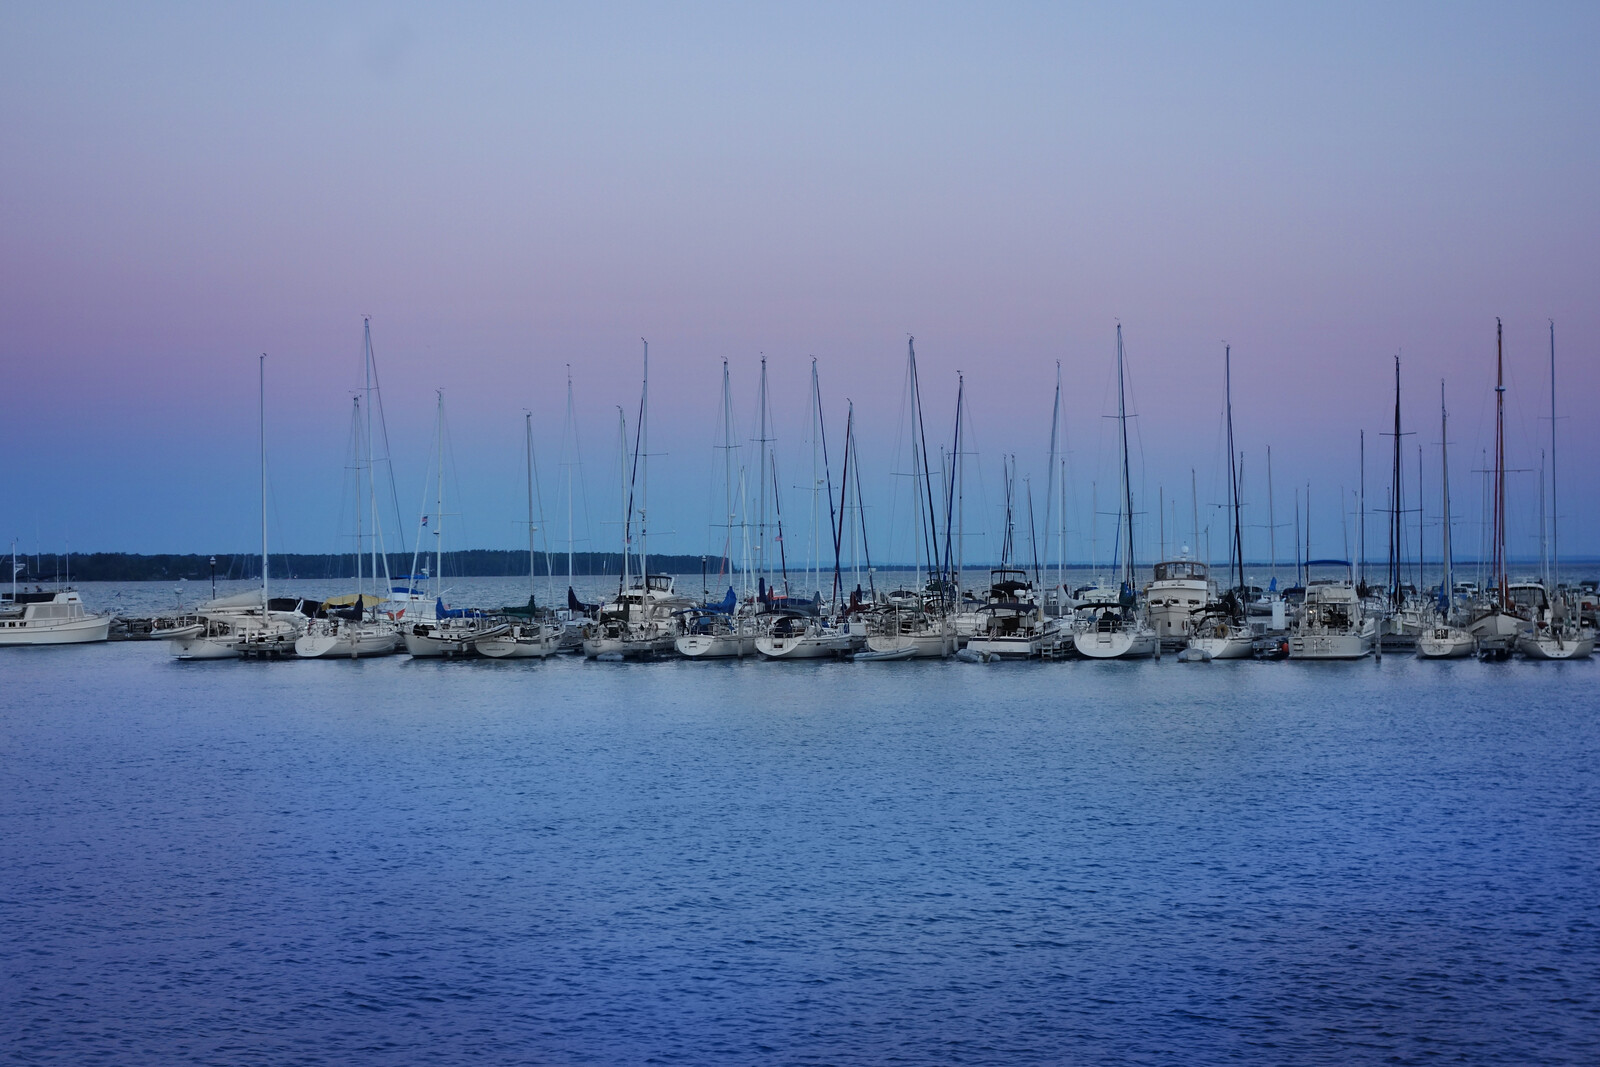 Sailboats in the marina in bayfield wisconsin at dusk, with lake superior and apostle islands in the background